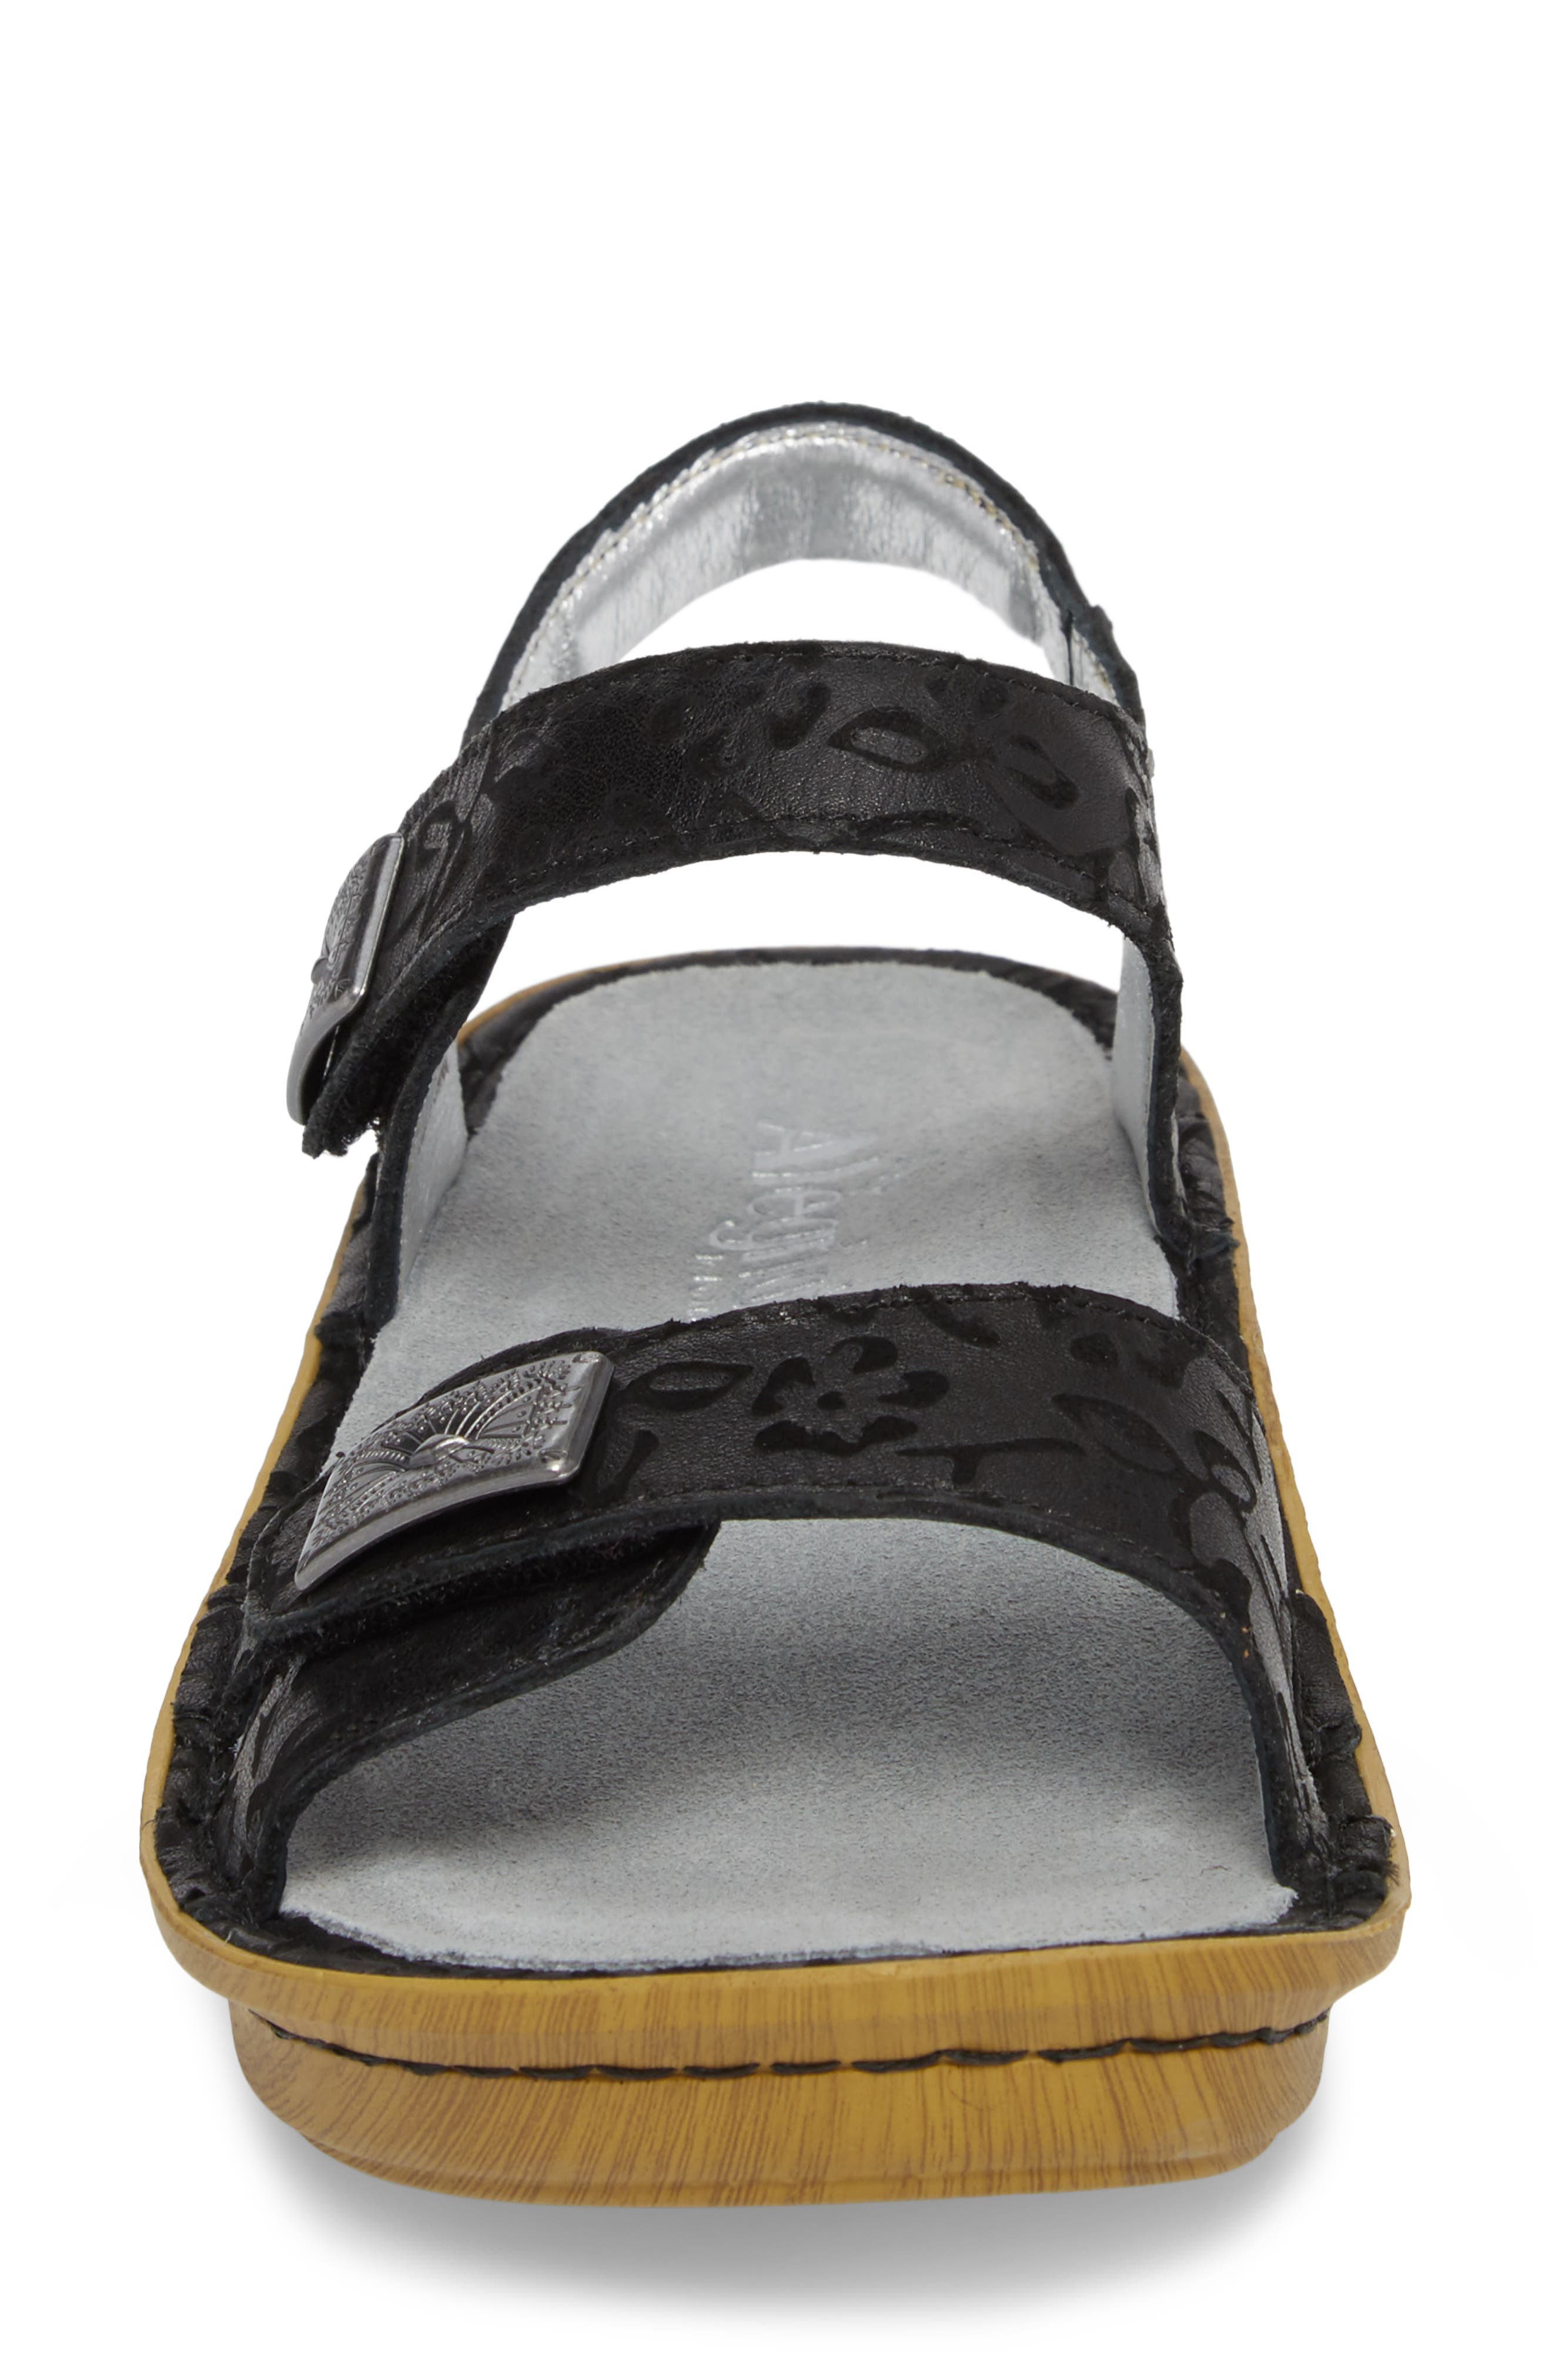 Vienna Sandal,                             Alternate thumbnail 4, color,                             MORNING GLORY BLACK LEATHER